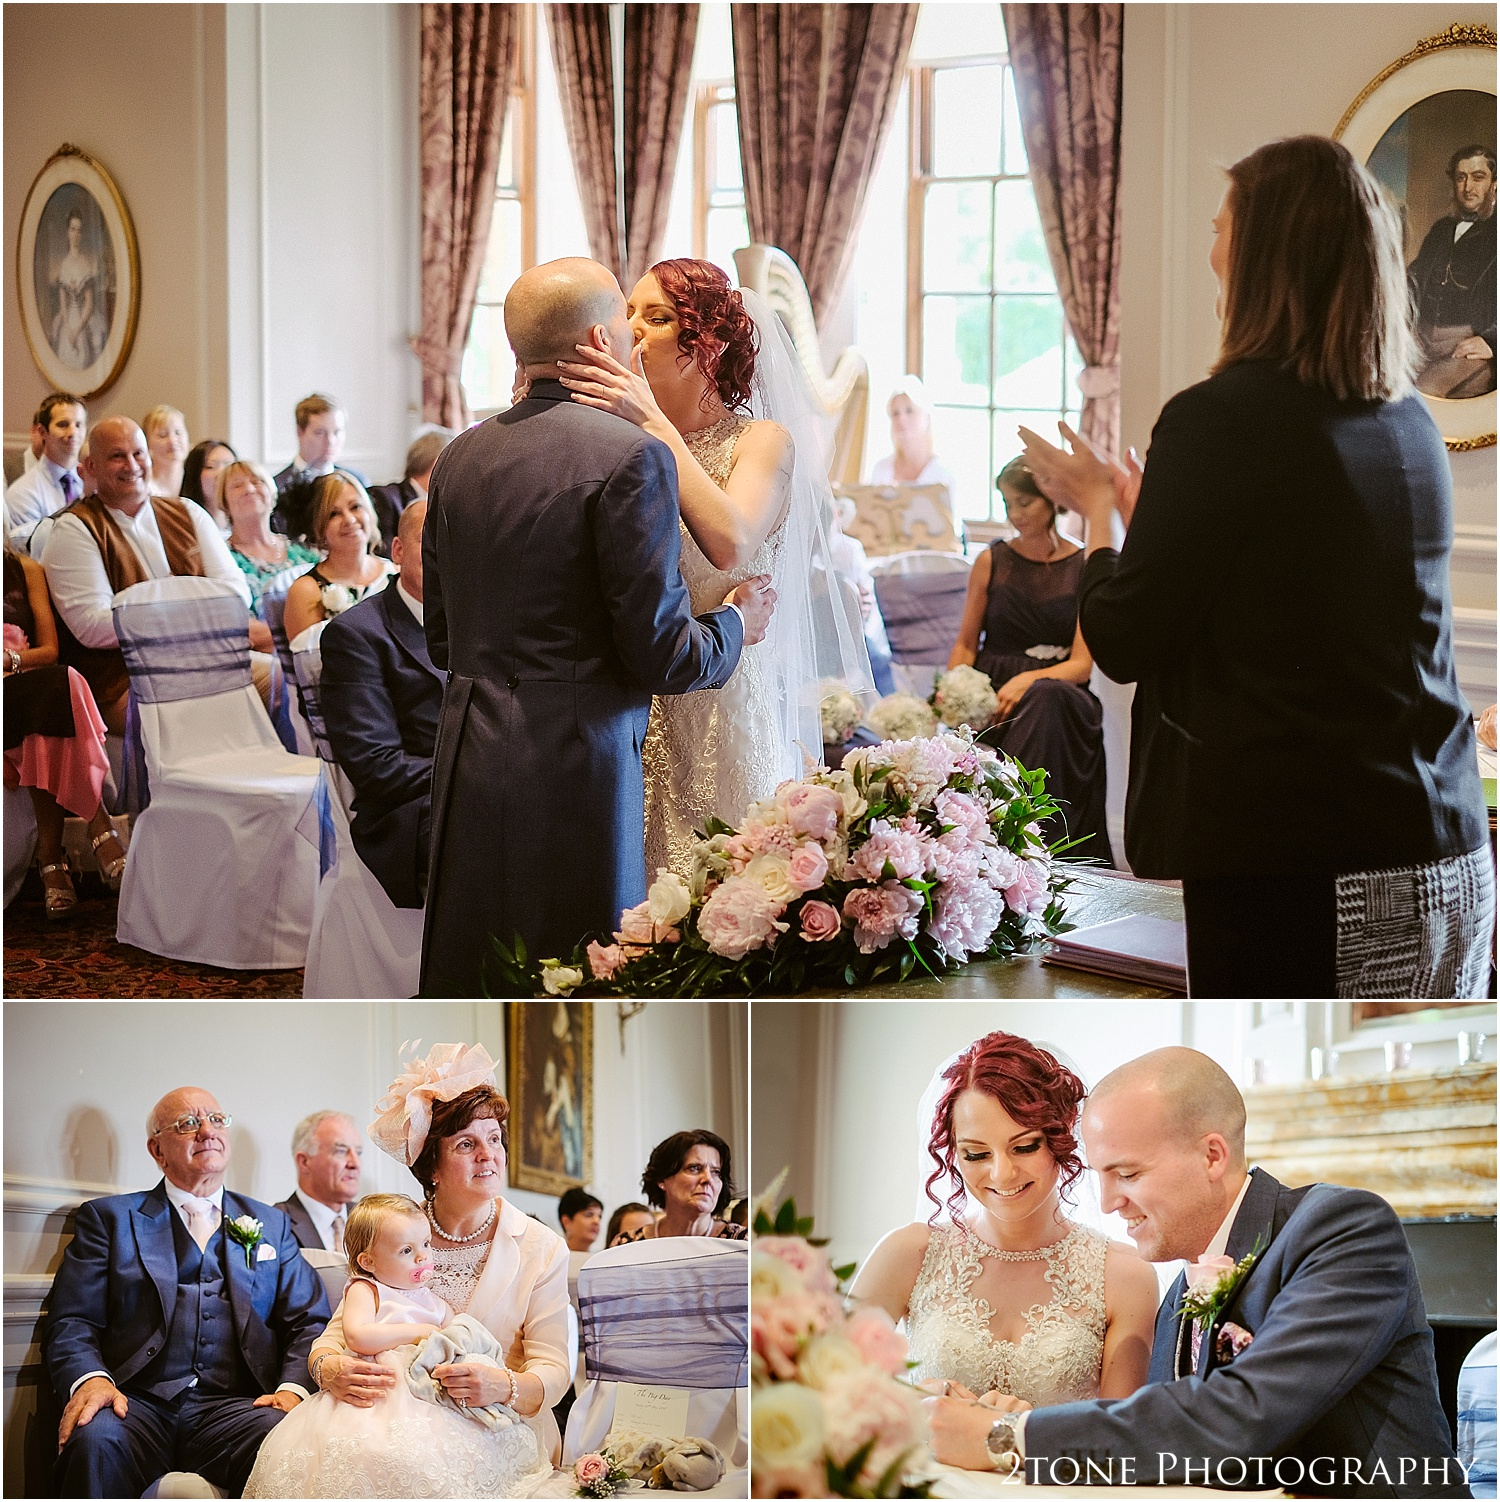 Crathorne Hall wedding 35.jpg